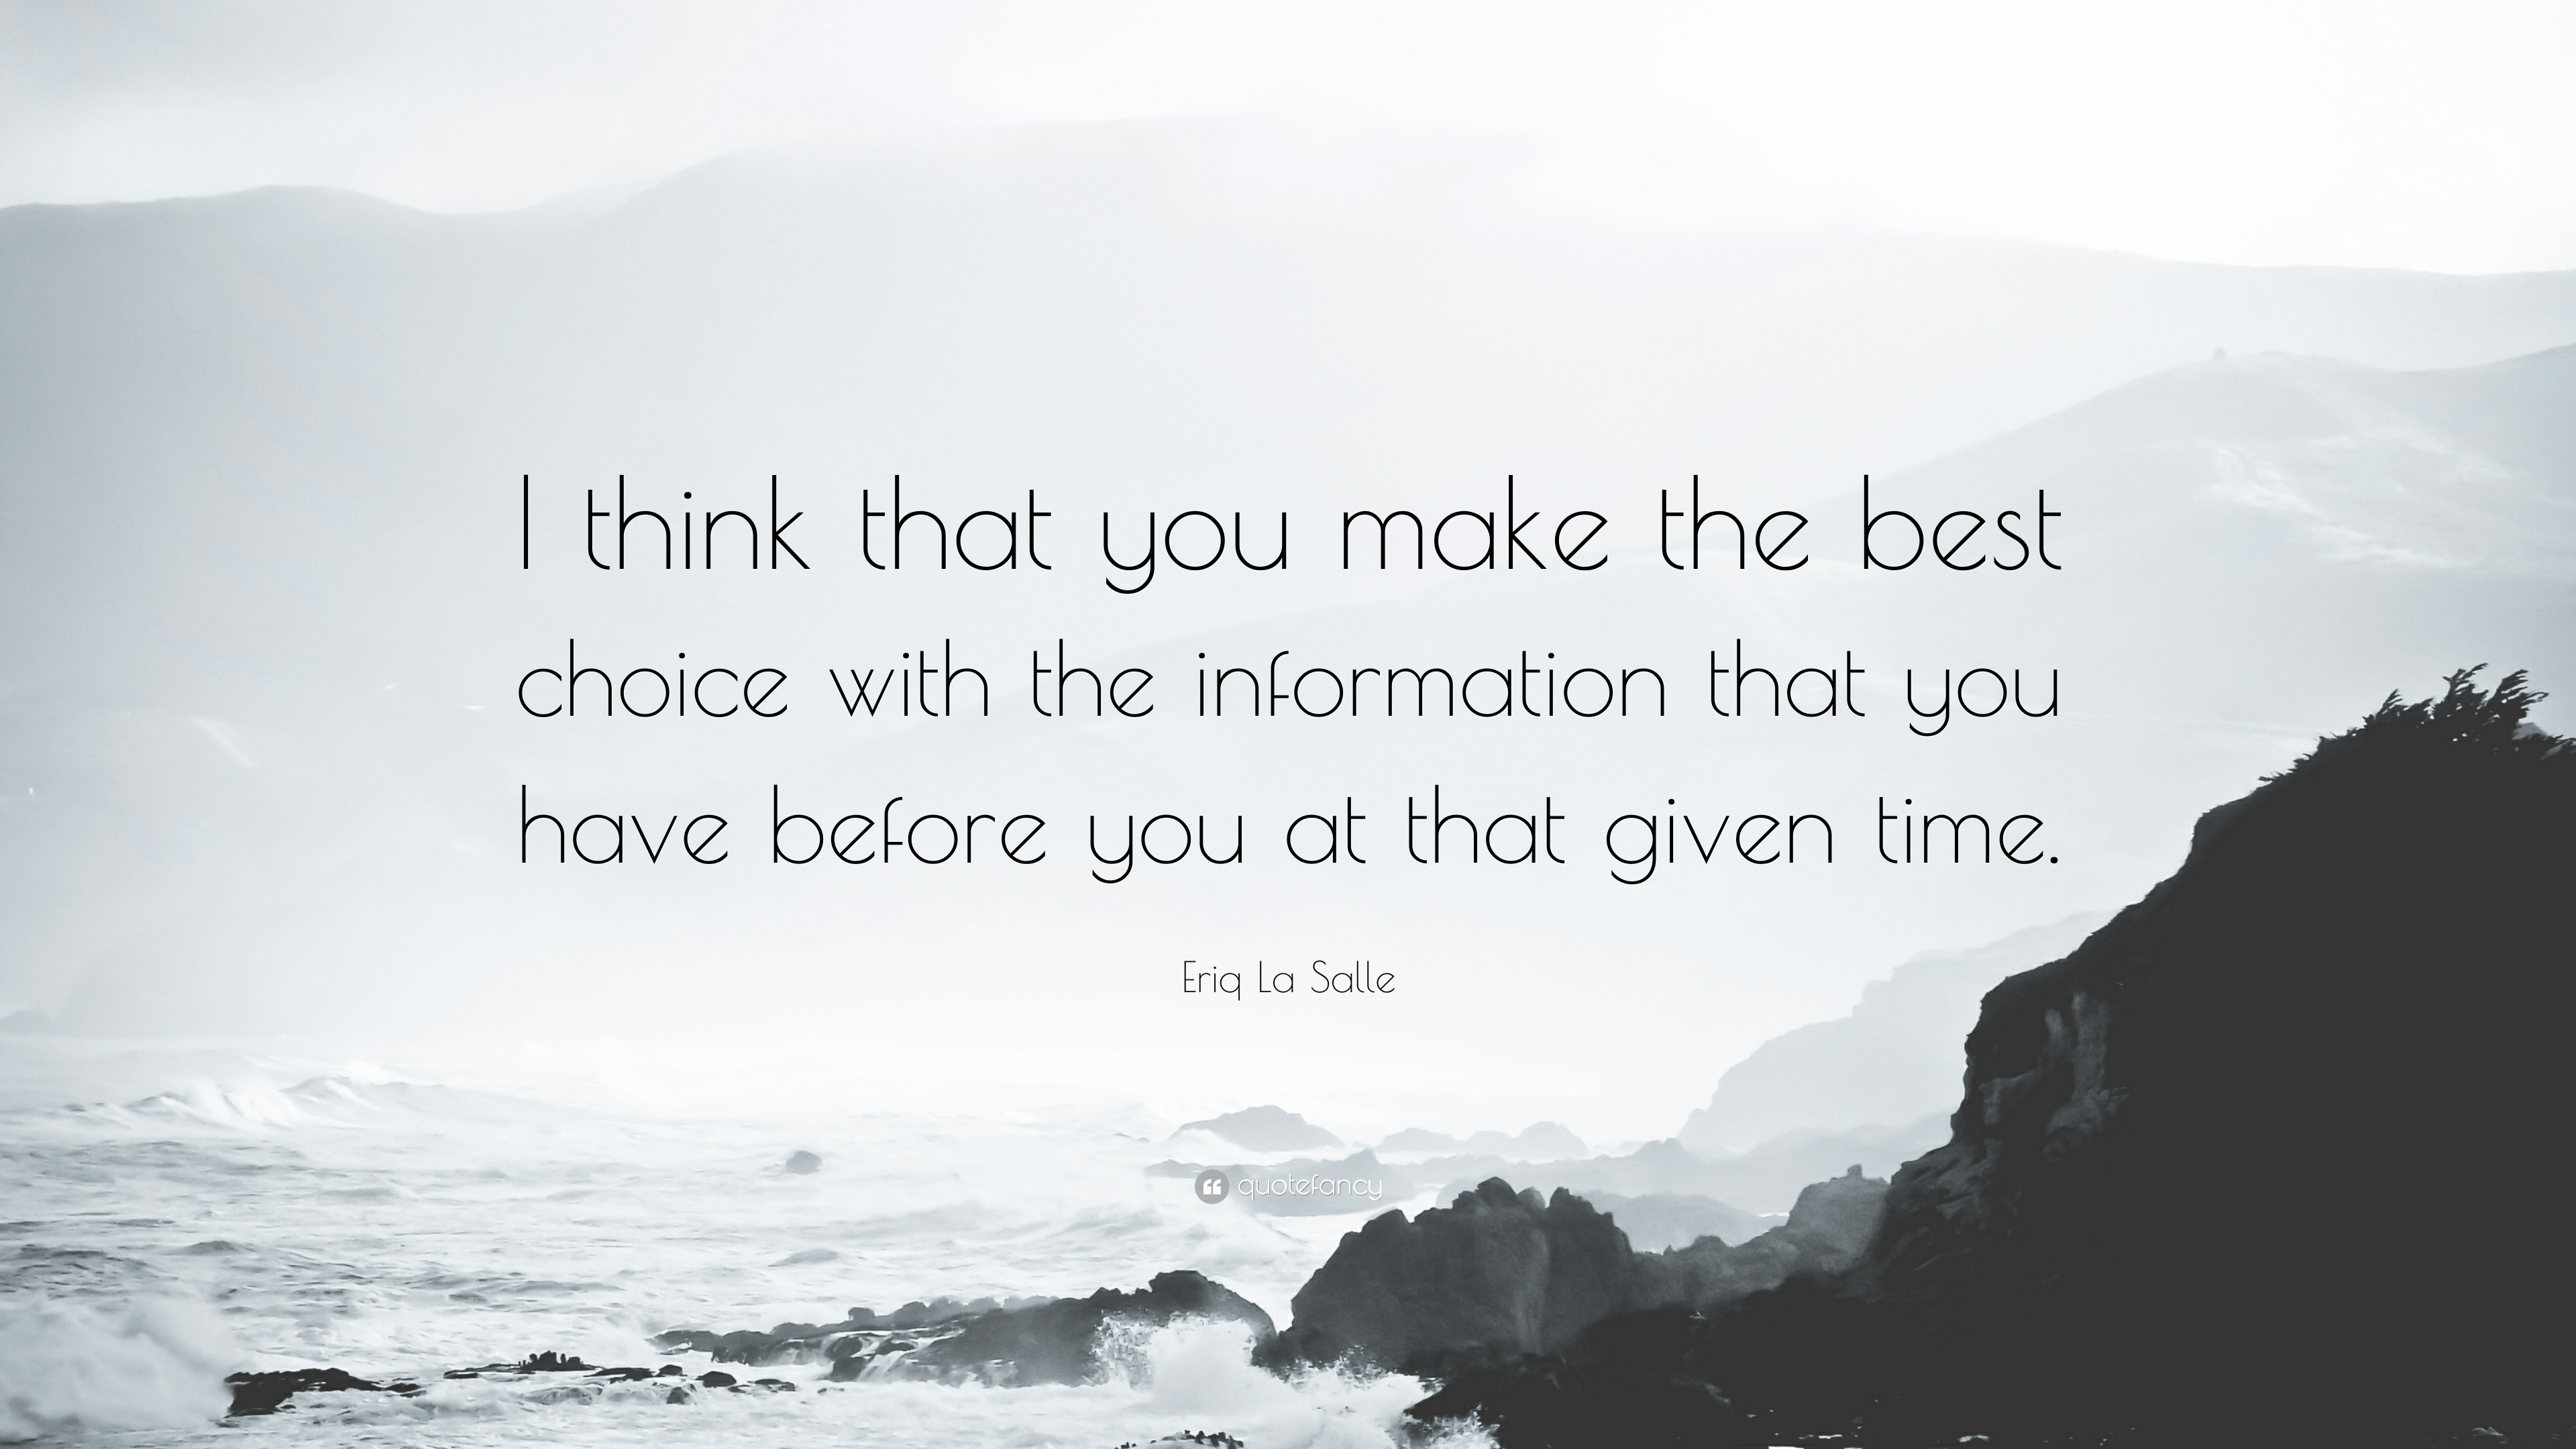 The best site: how to make a choice